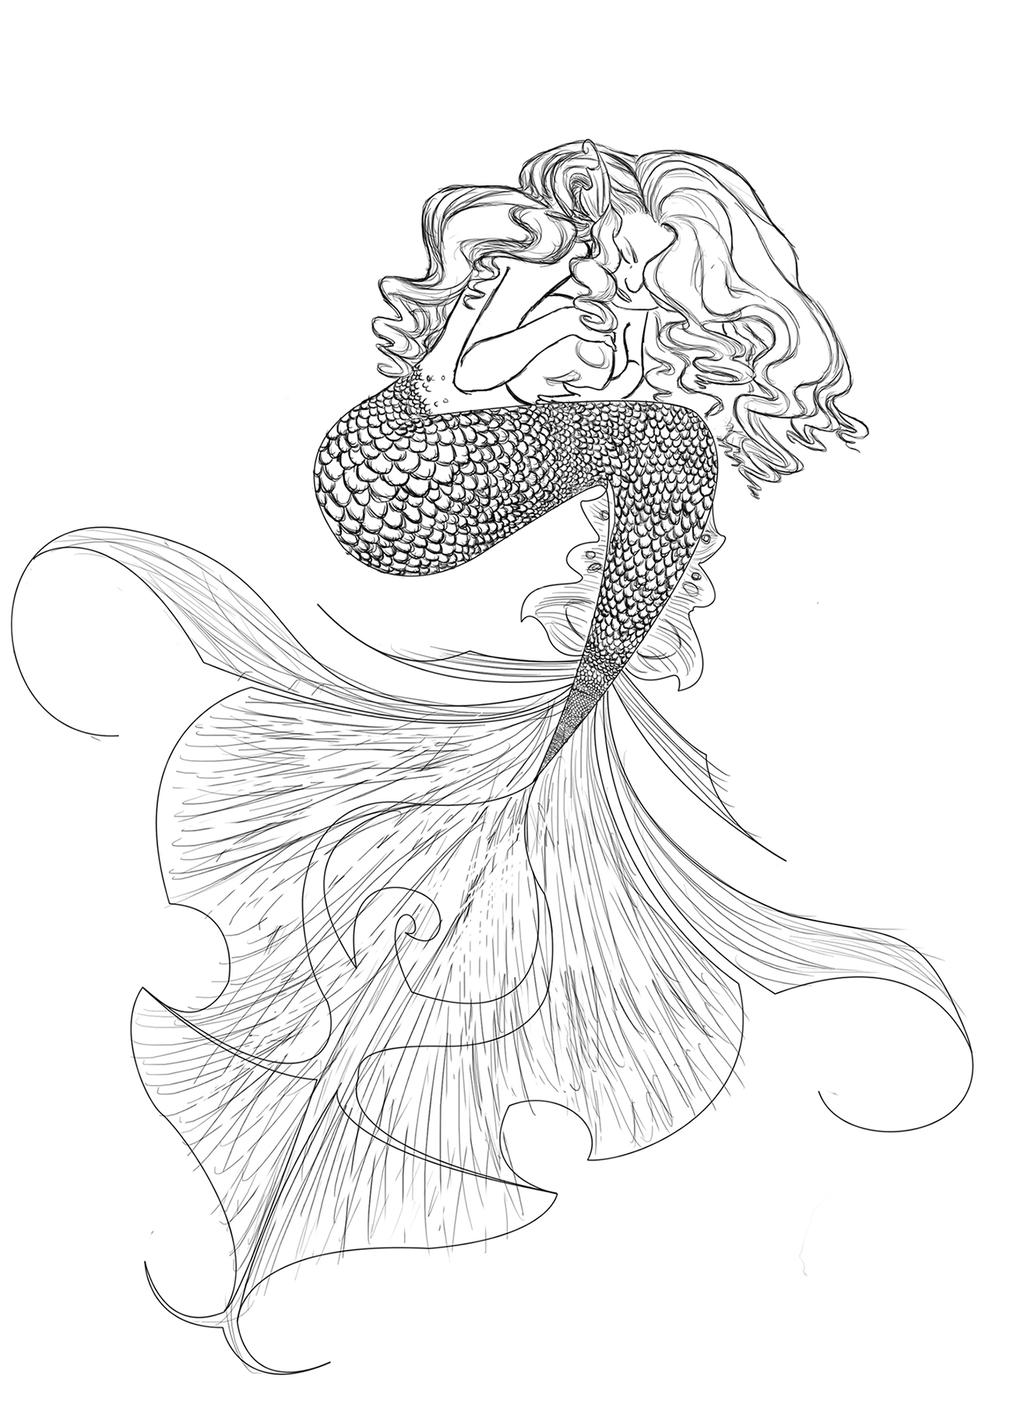 mermaid drawing mermaid extract from 50 things to draw by ed tadem how mermaid drawing